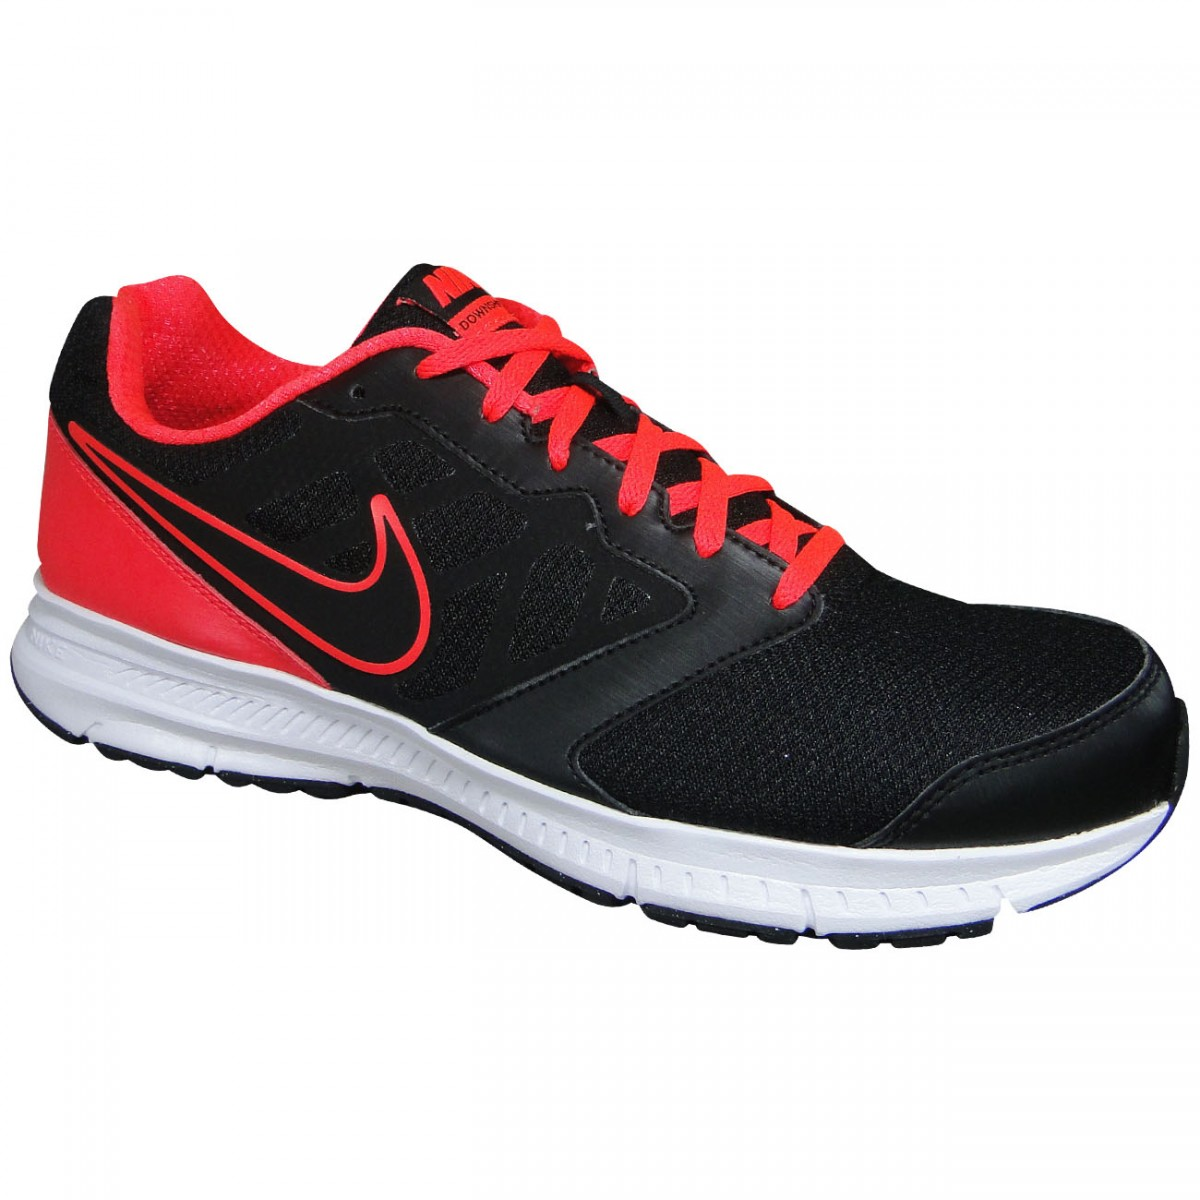 Tenis Nike Downshifter 6